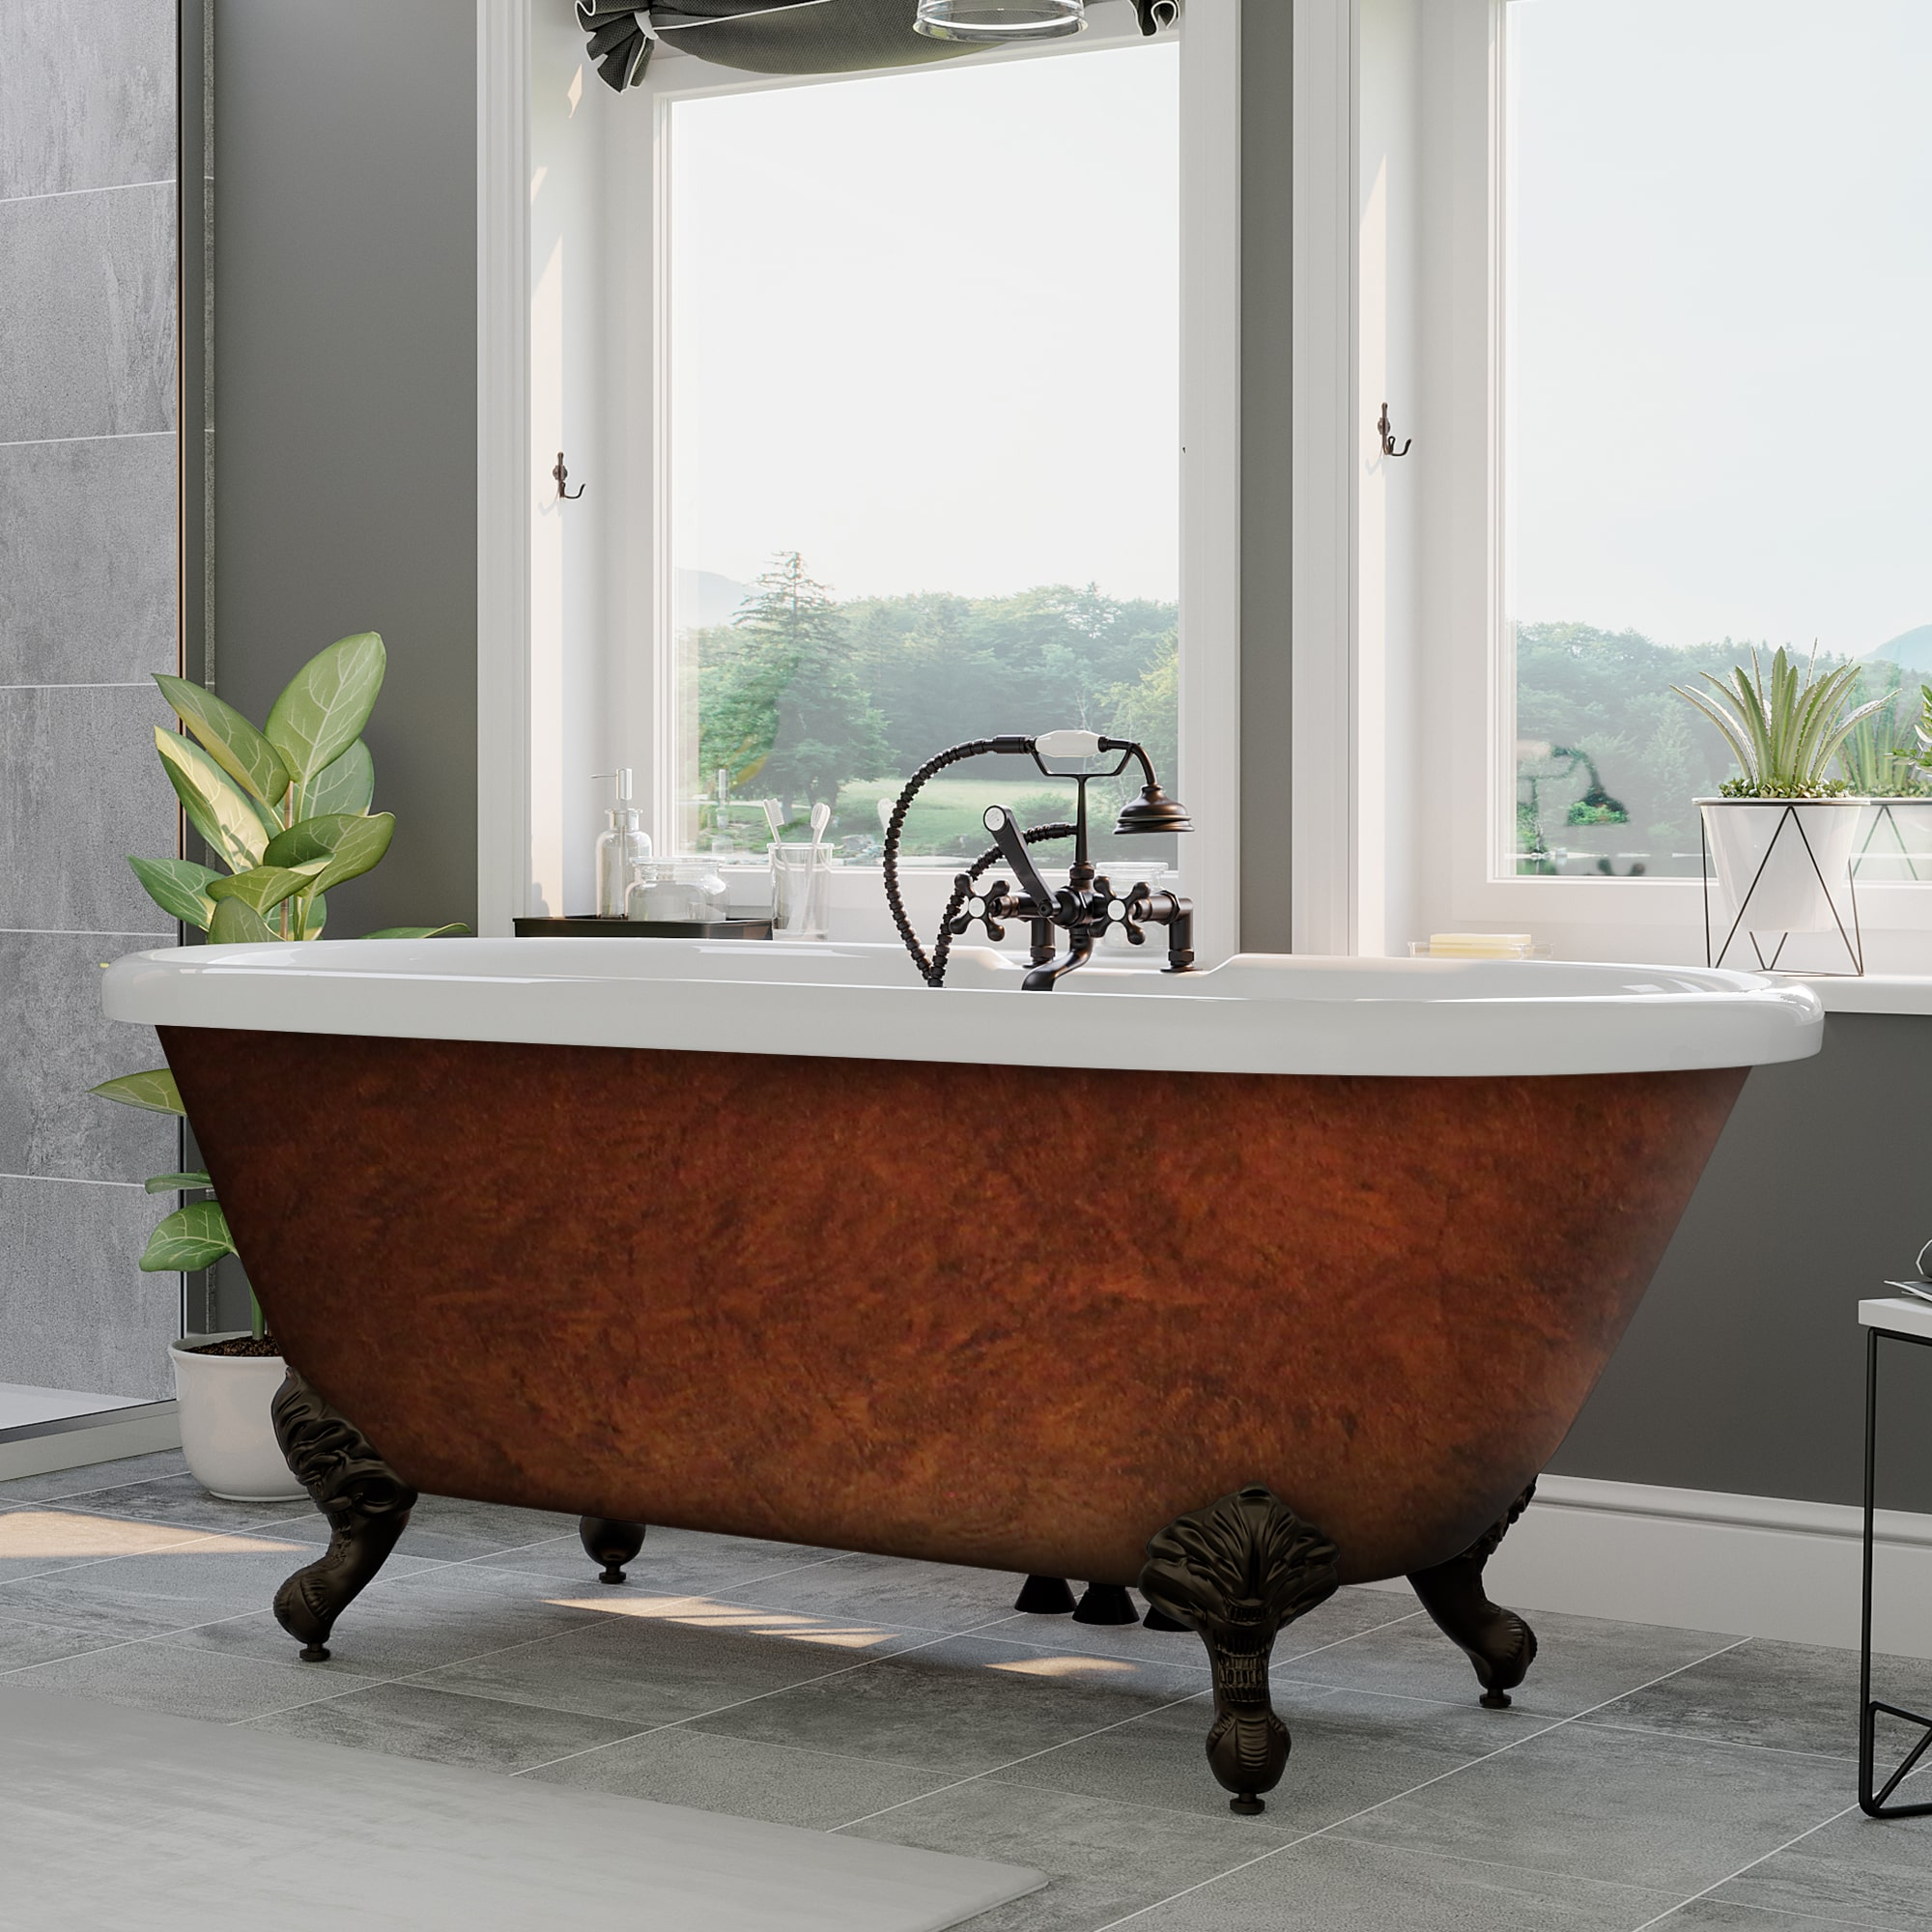 60″ Double Ended Tub, Acrylic, Clawfoot, Faux Copper Finish